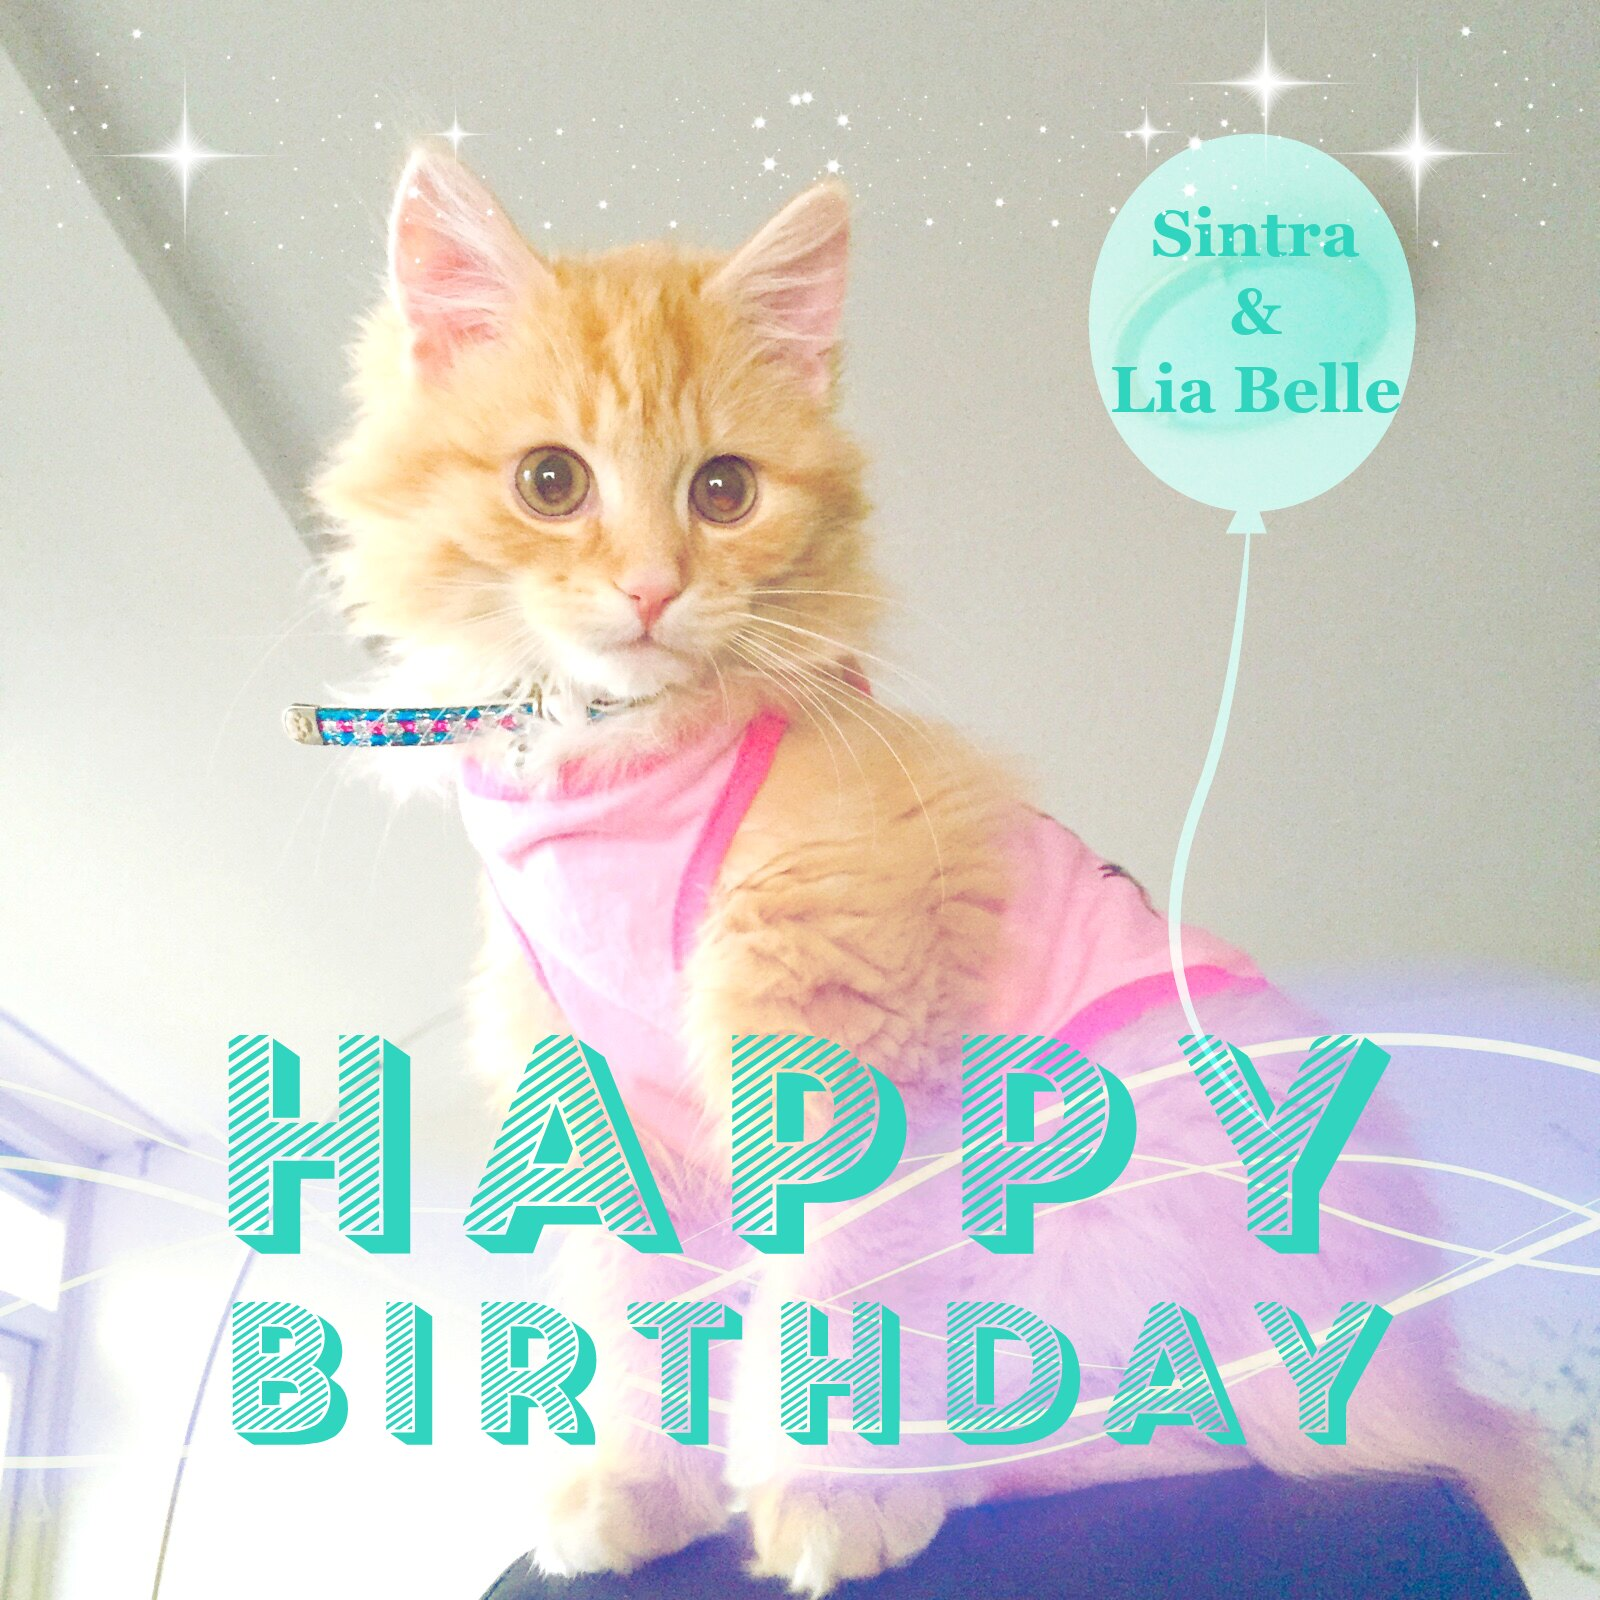 Wishing you a wonderful and happy birthday with hugs and kisses from Sintra The Cat and Lia Belle